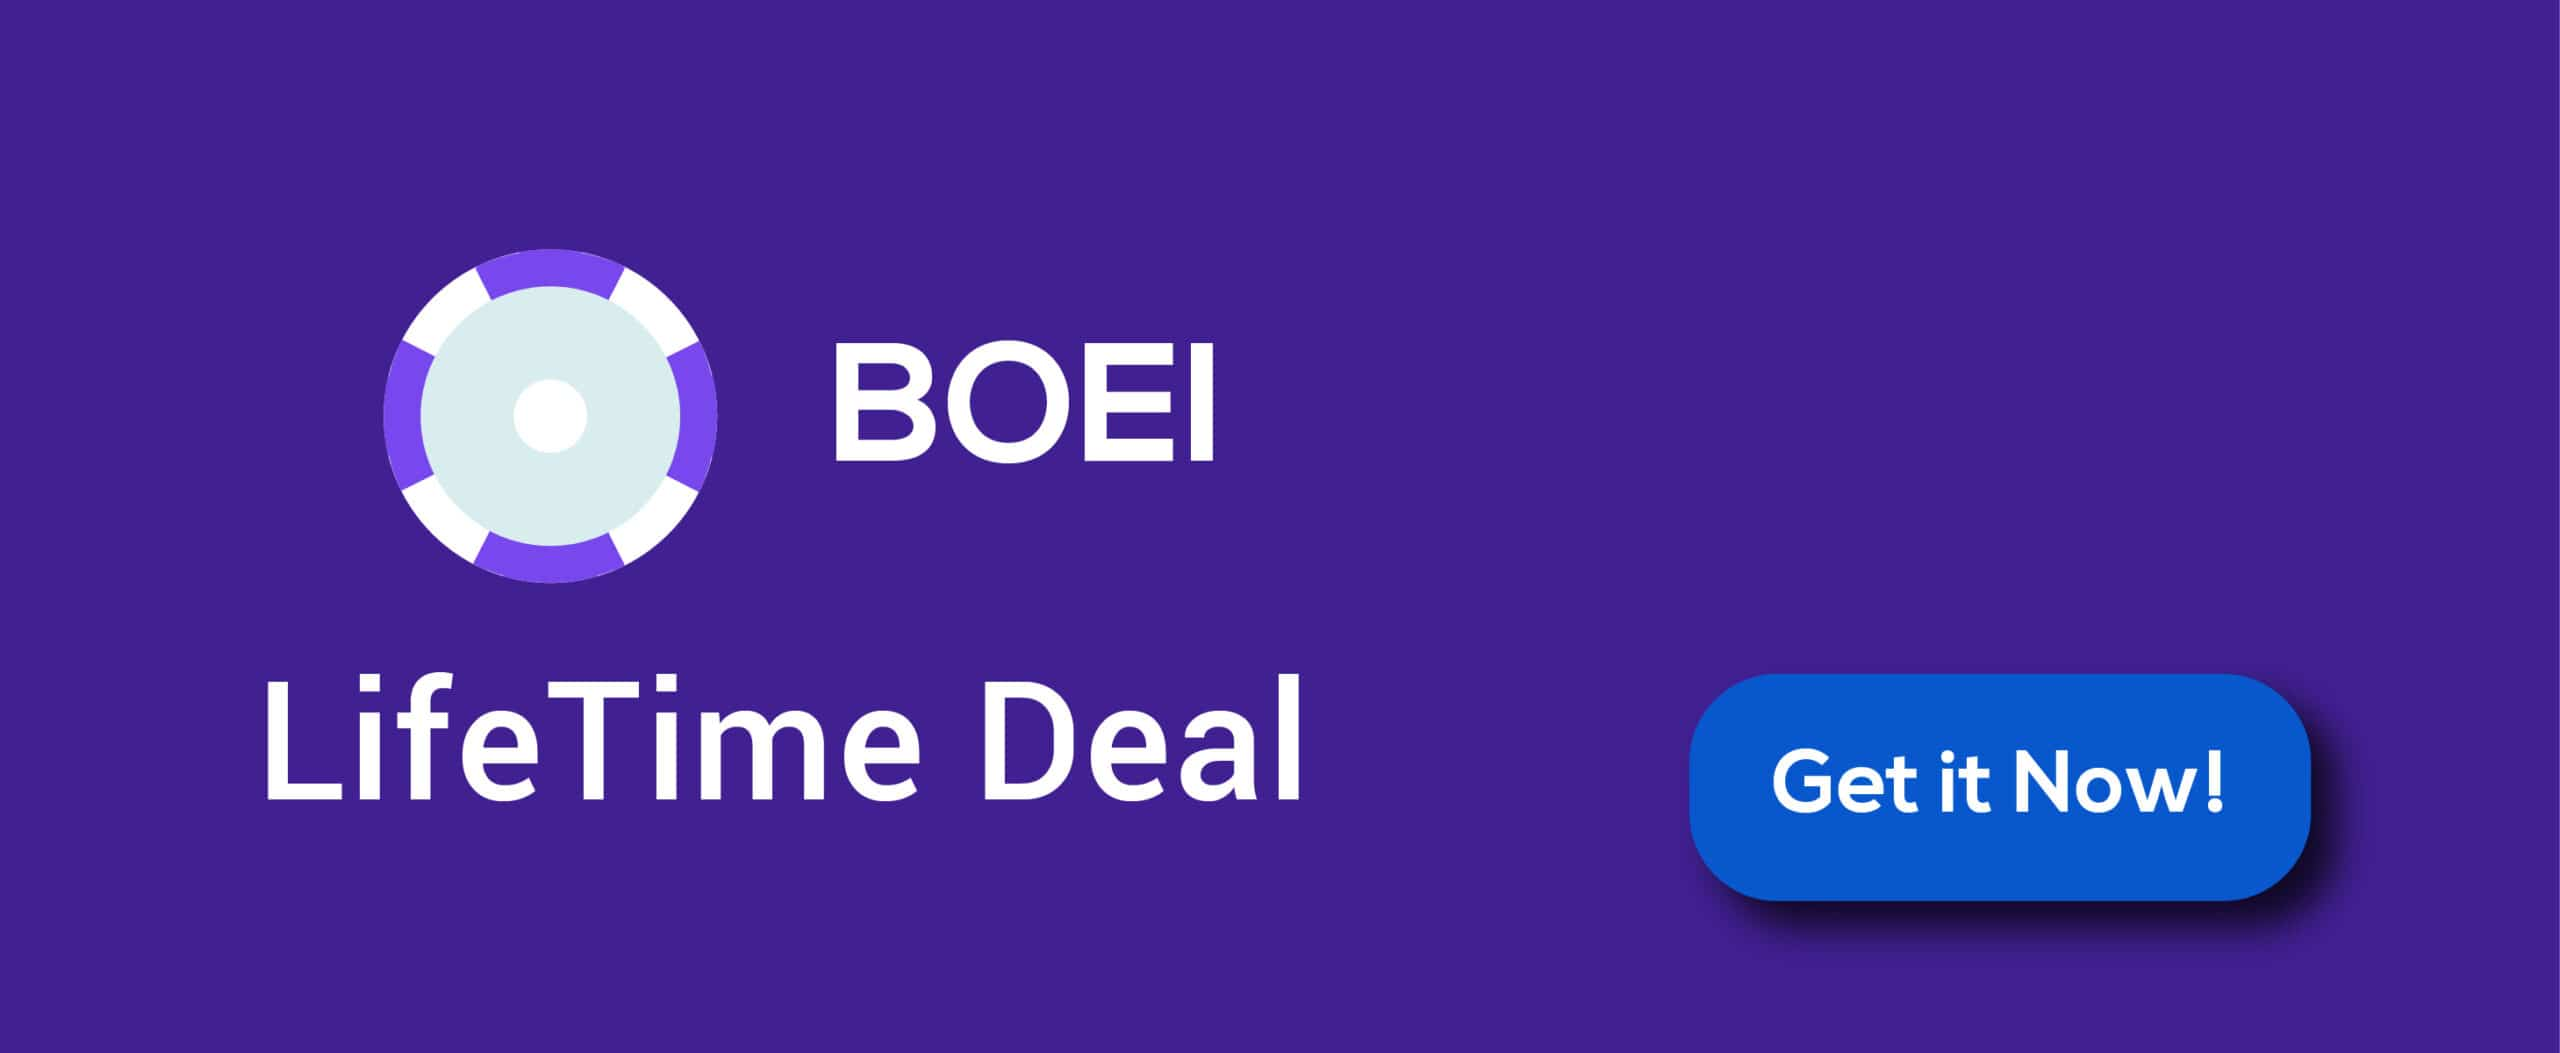 Boei Lifetime Deal | With Reviews 2021